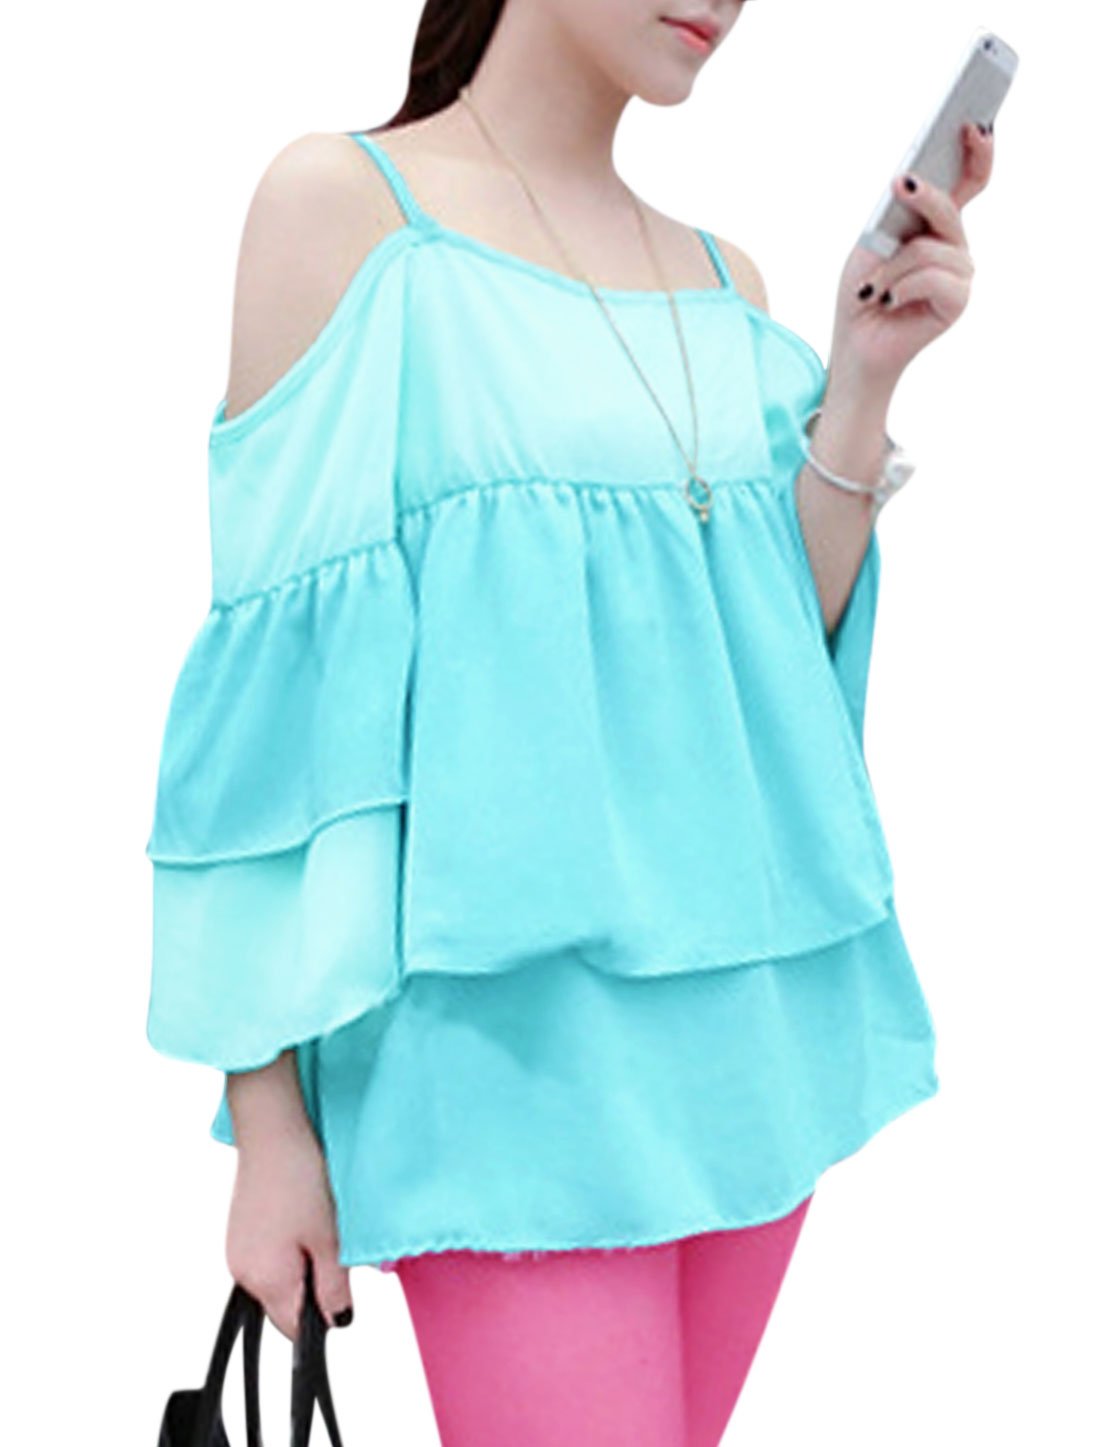 Lady Spaghetti Strap Ruffle Layered Design Cut Out Shoulder Blouse Aqua Blue S